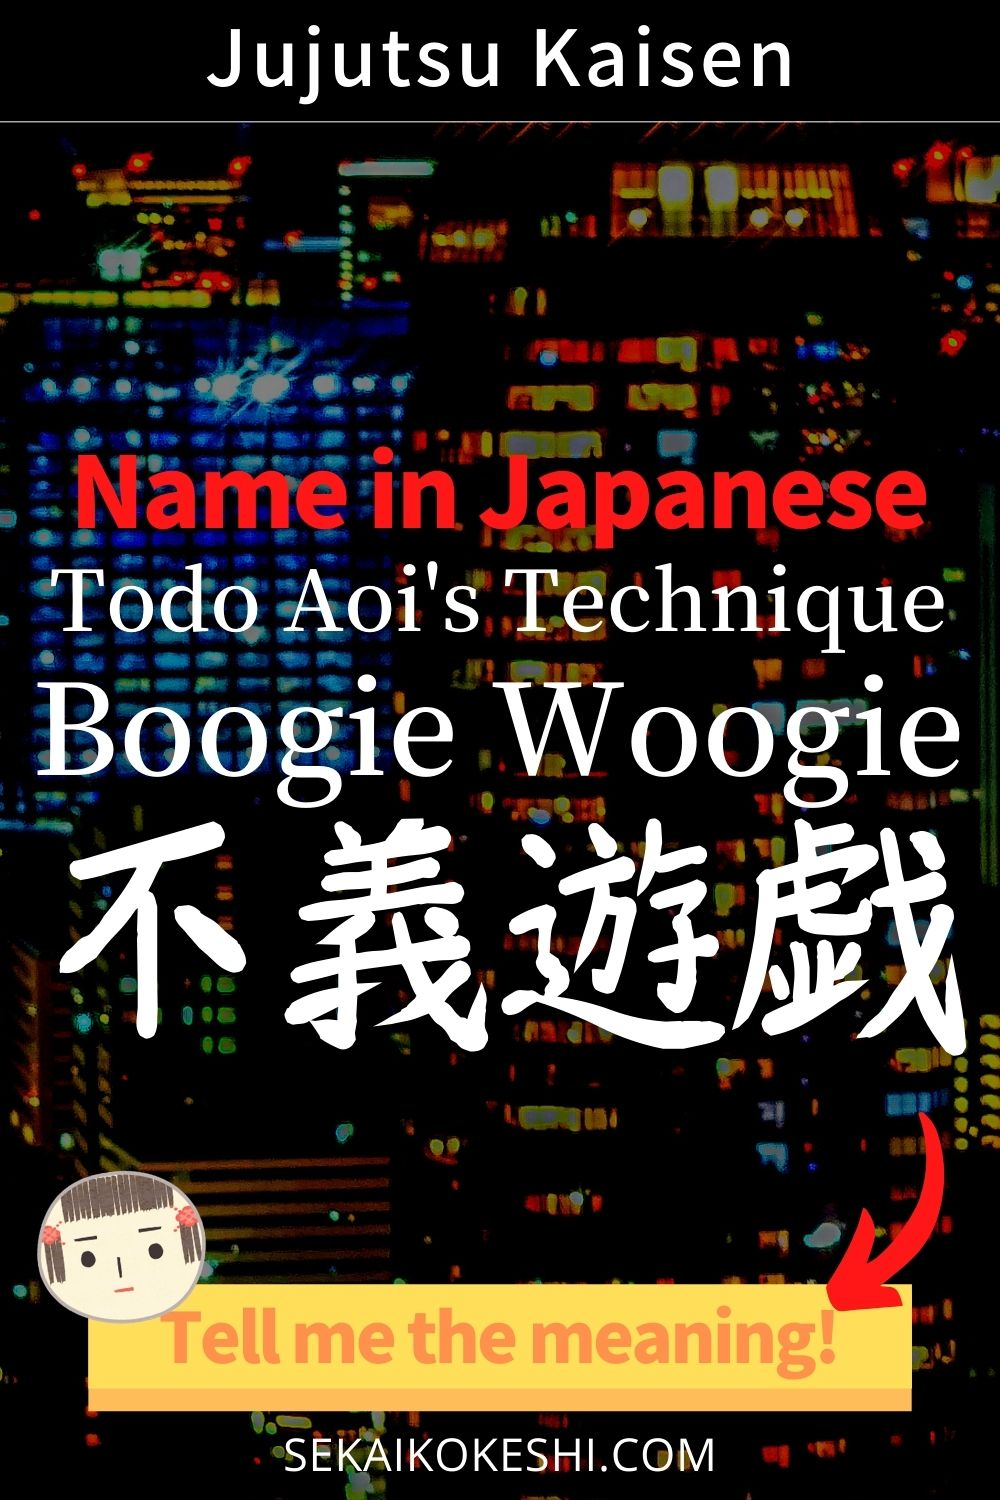 jujutsu kaisen, name in japanese, todo aoi's technique boogie woogie 不義遊戯, tell me the meaning! sekaikokeshi.com